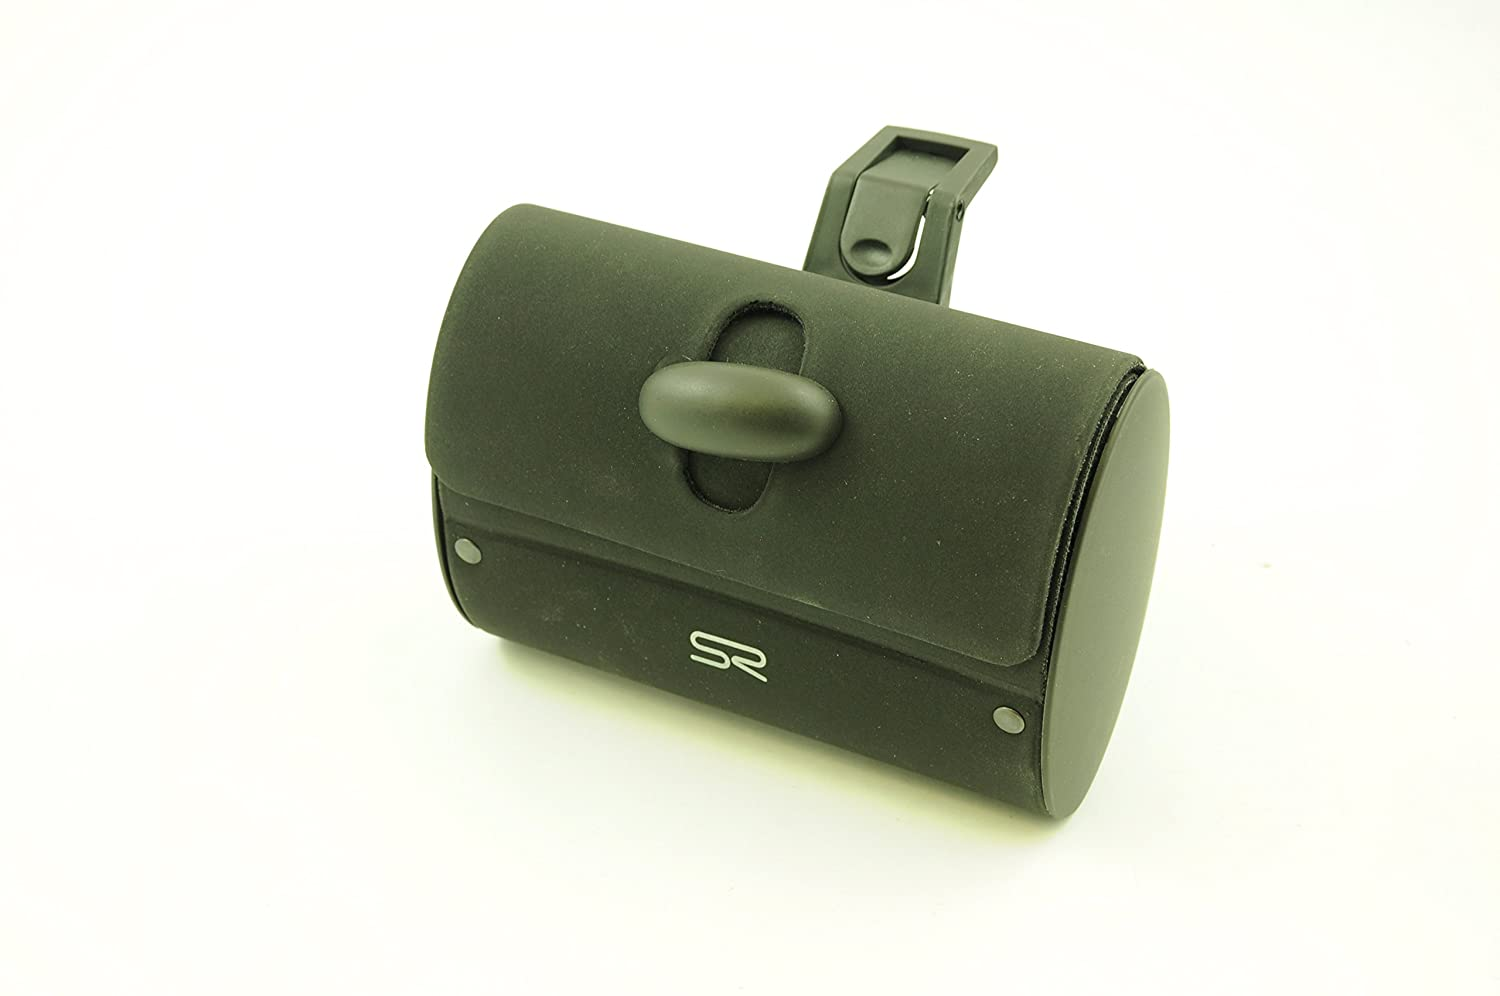 Selle Royal Sr Saddlebag Large 15cmx 65cm Black Integrated Clip Introduction To 7400 Series Digital Logic Devices Fizix System 40 Off Sports Outdoors